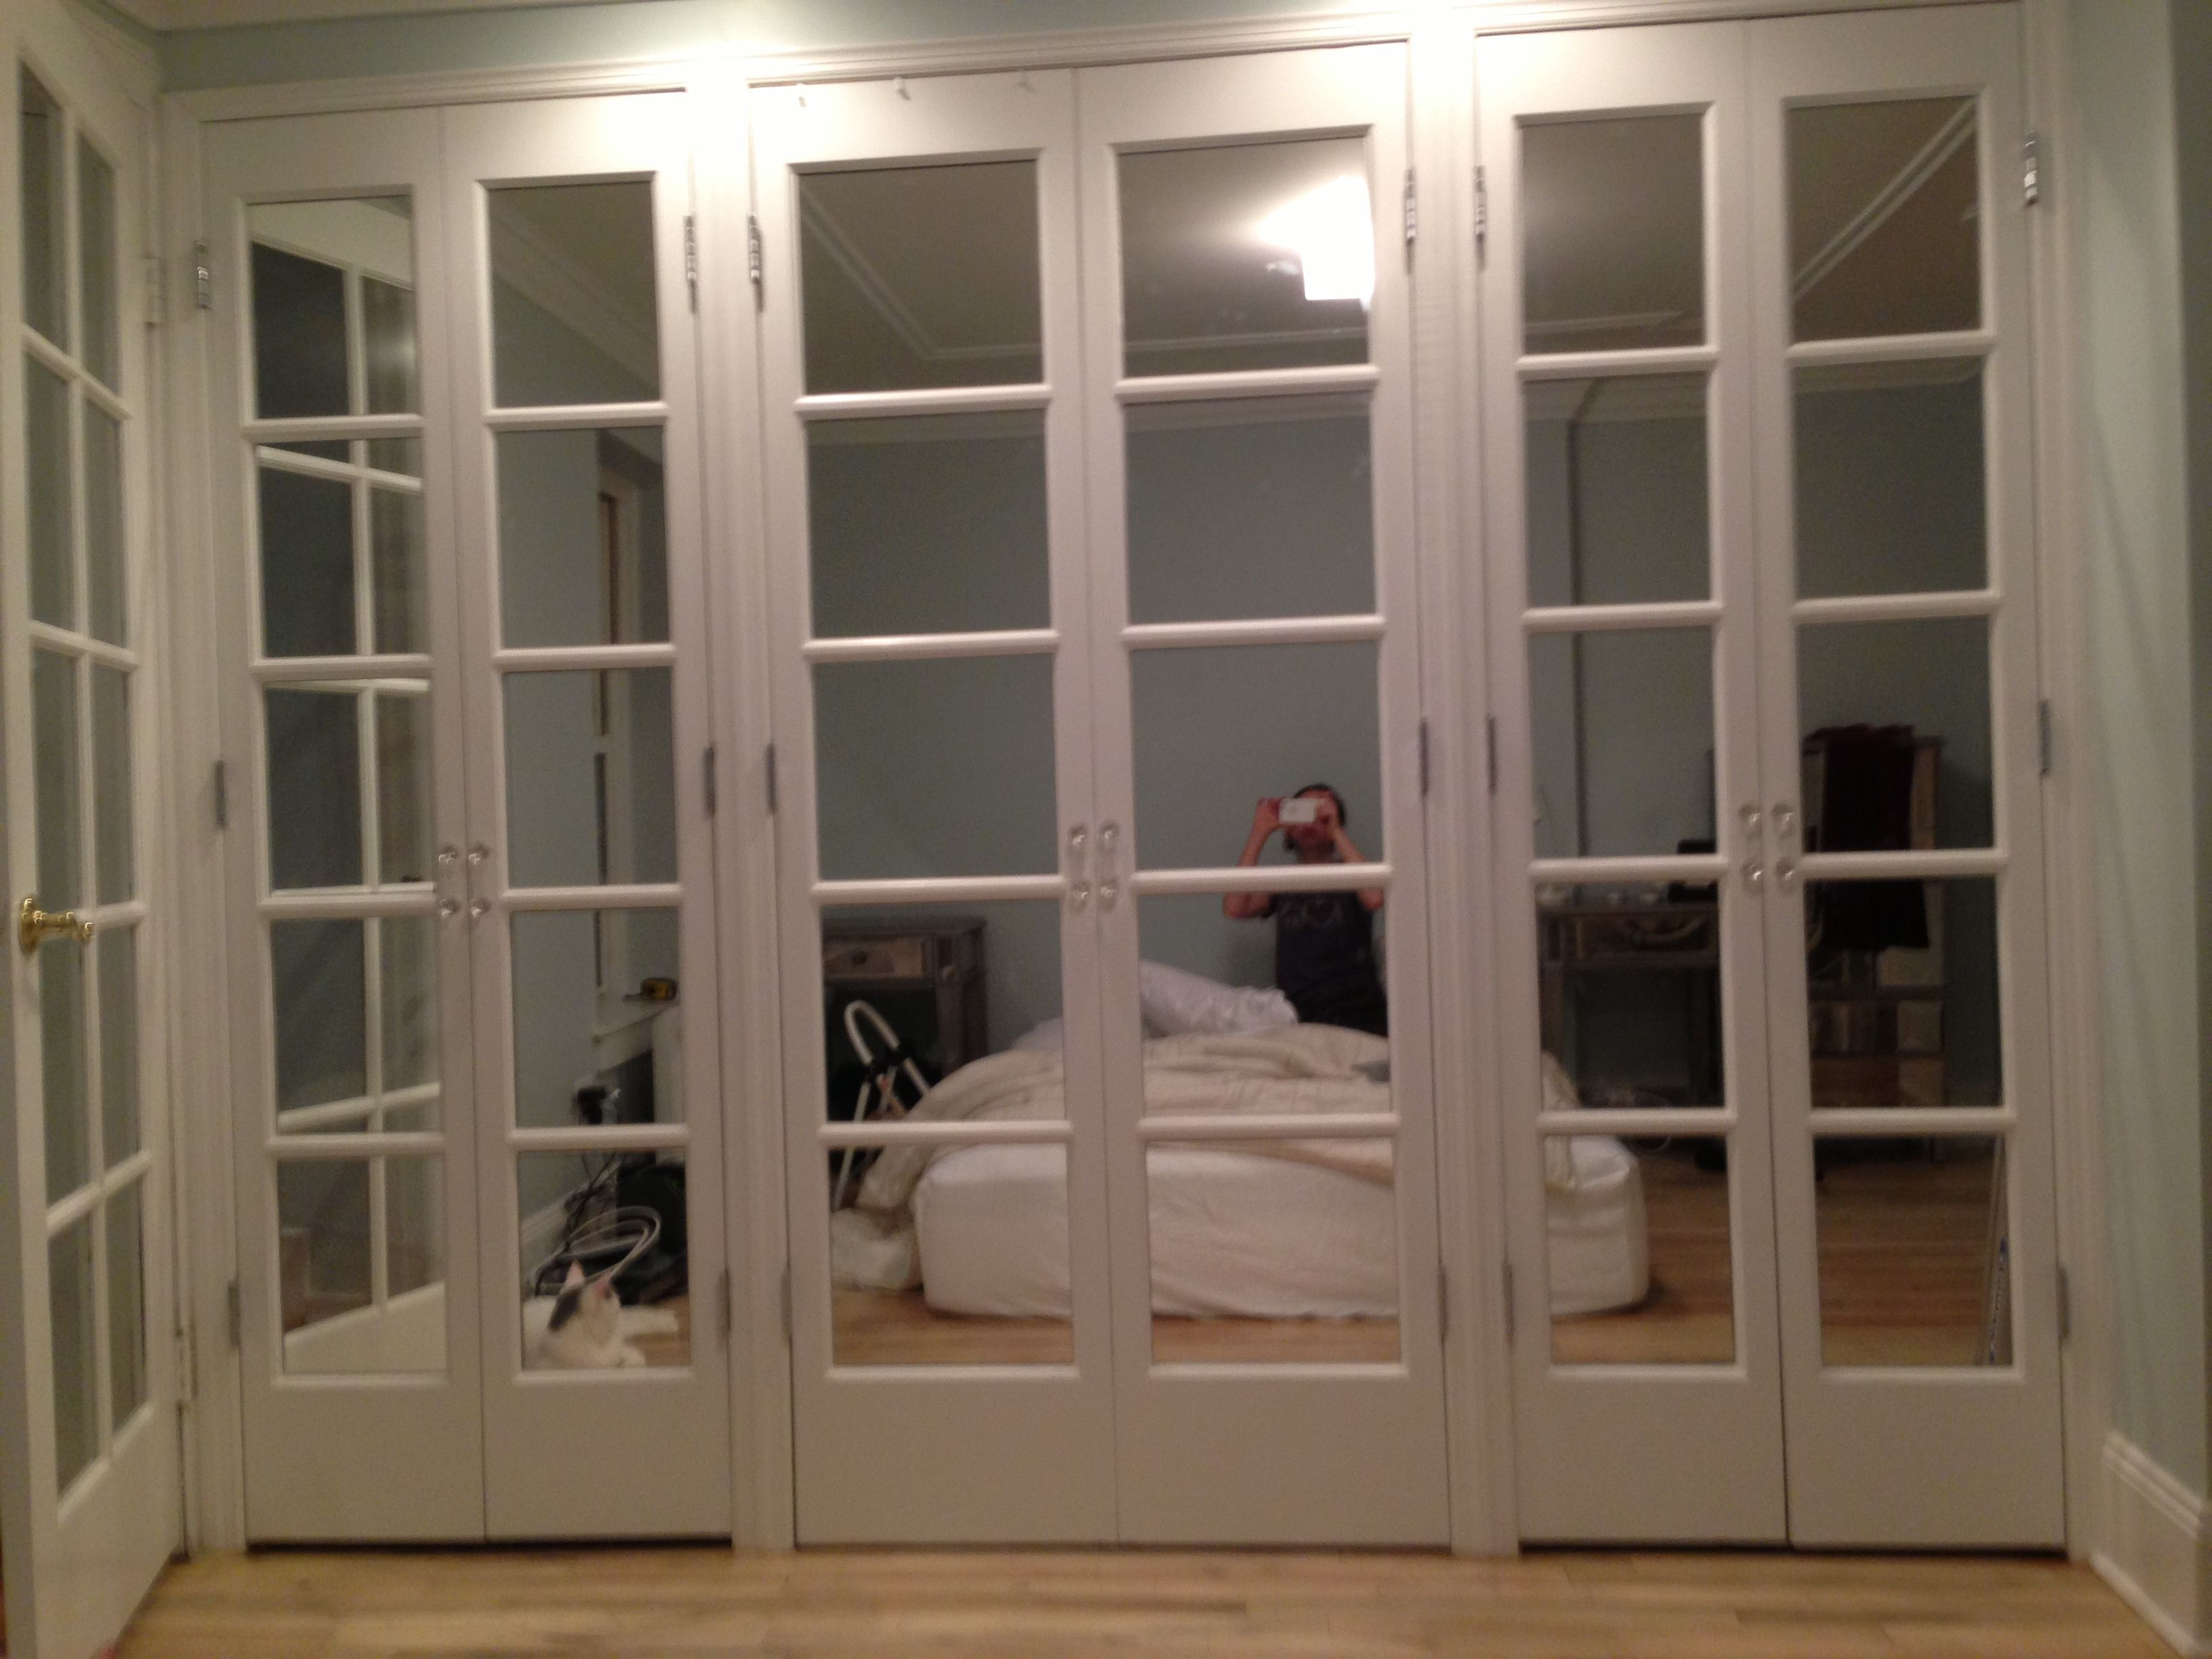 Mirrored French Doors In Bedroom Bedroom Pinterest Doors